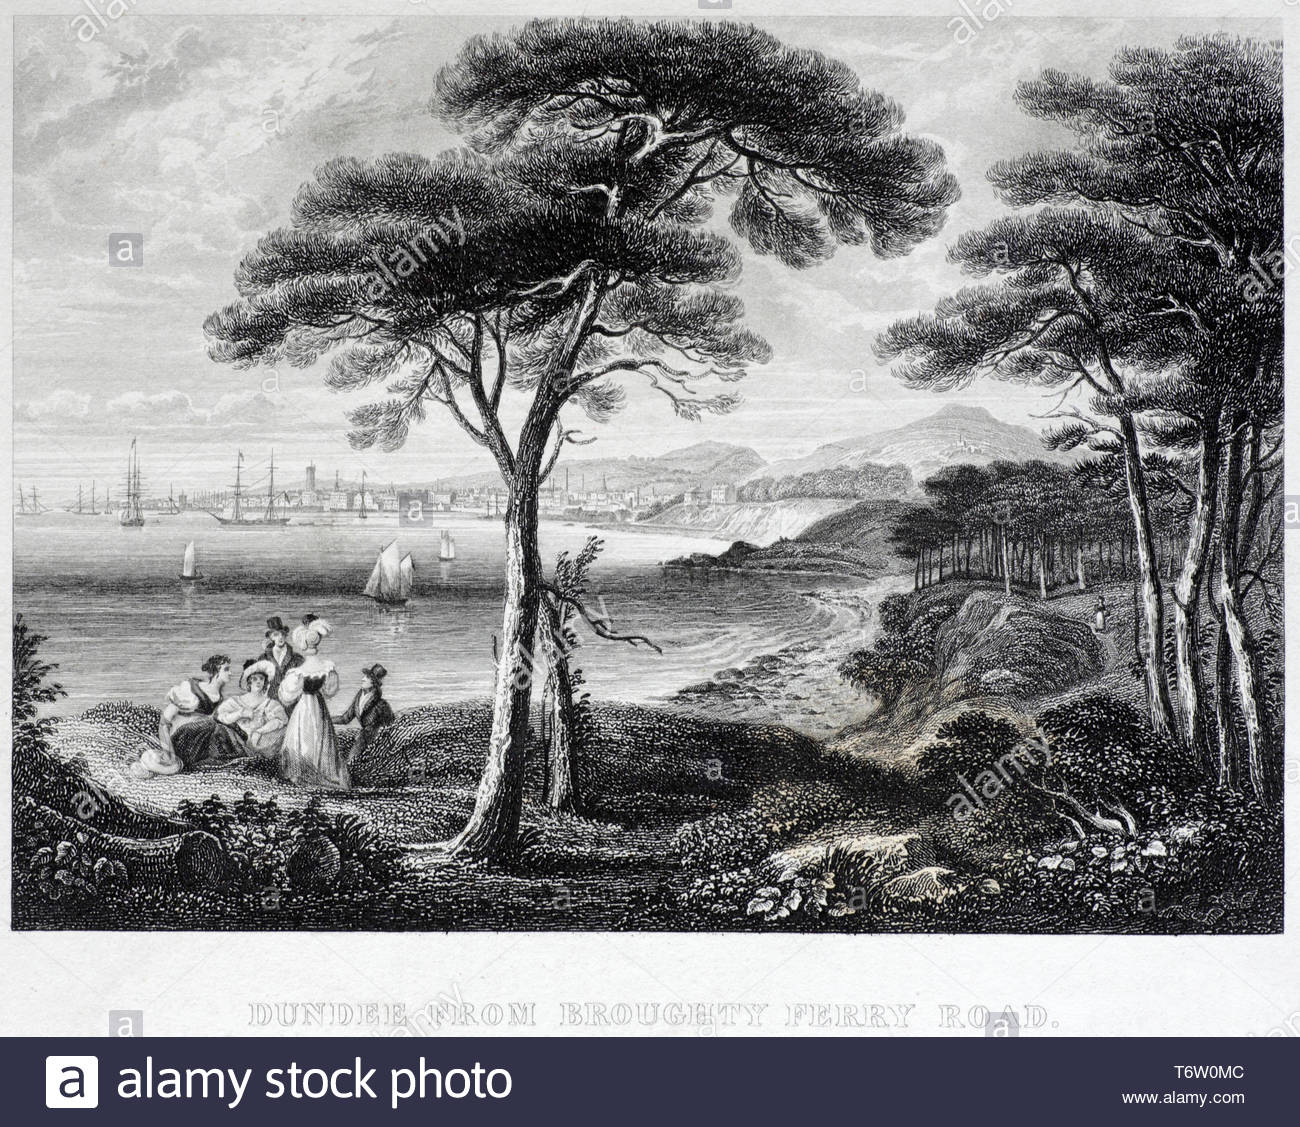 View of Dundee Scotland, from Broughty Ferry Road, antique engraving from 1843 - Stock Image